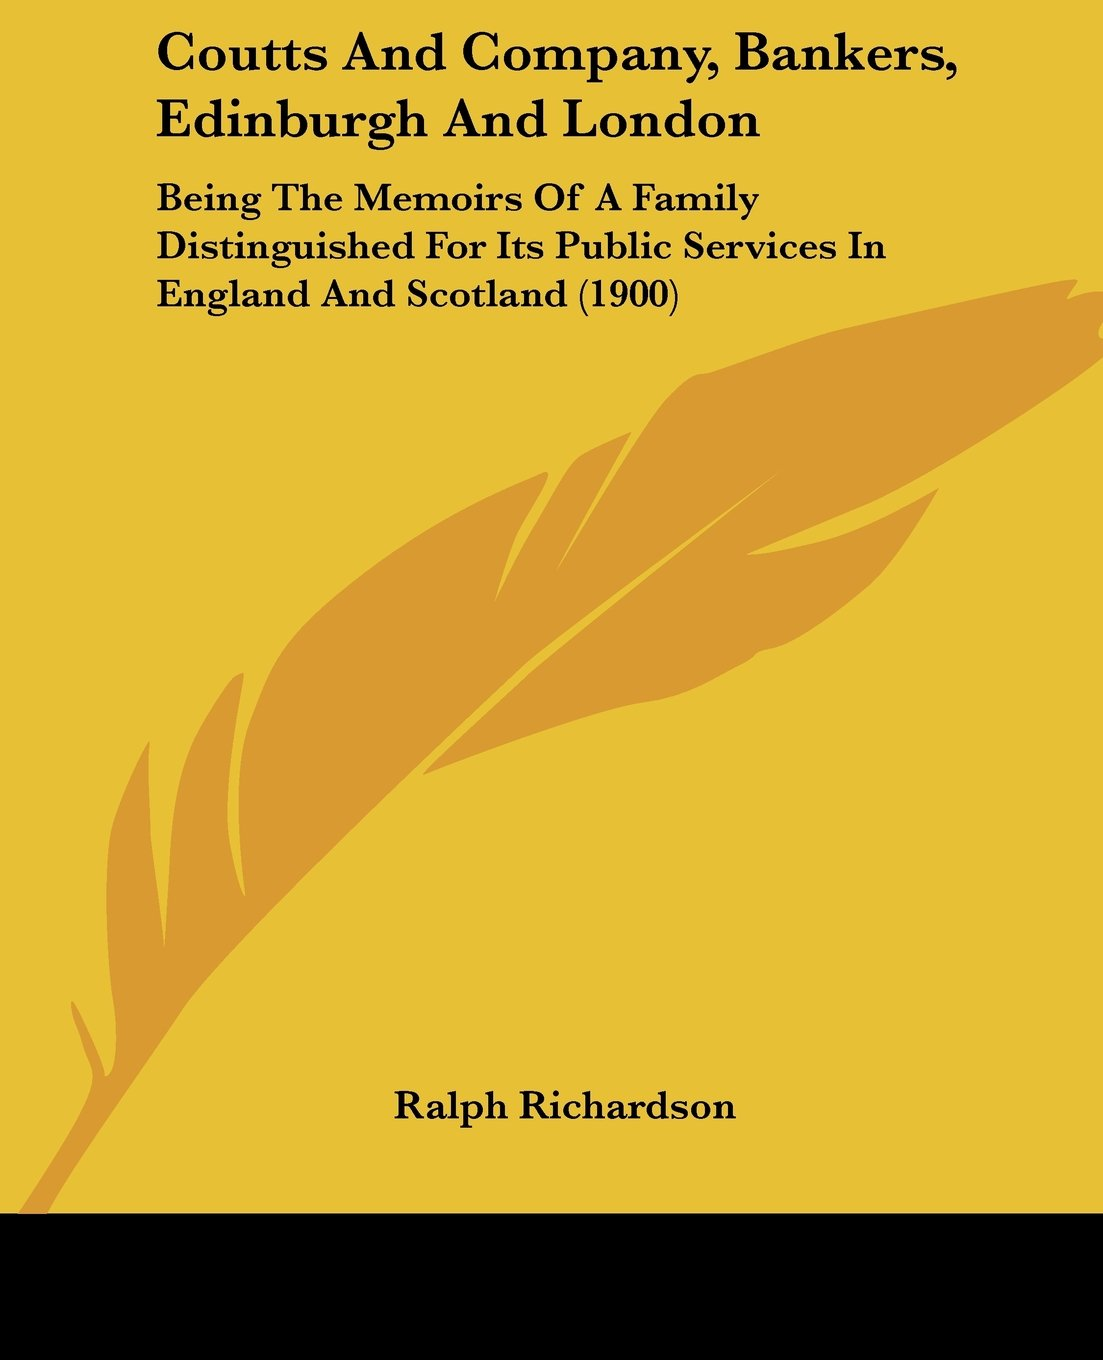 Download Coutts And Company, Bankers, Edinburgh And London: Being The Memoirs Of A Family Distinguished For Its Public Services In England And Scotland (1900) PDF